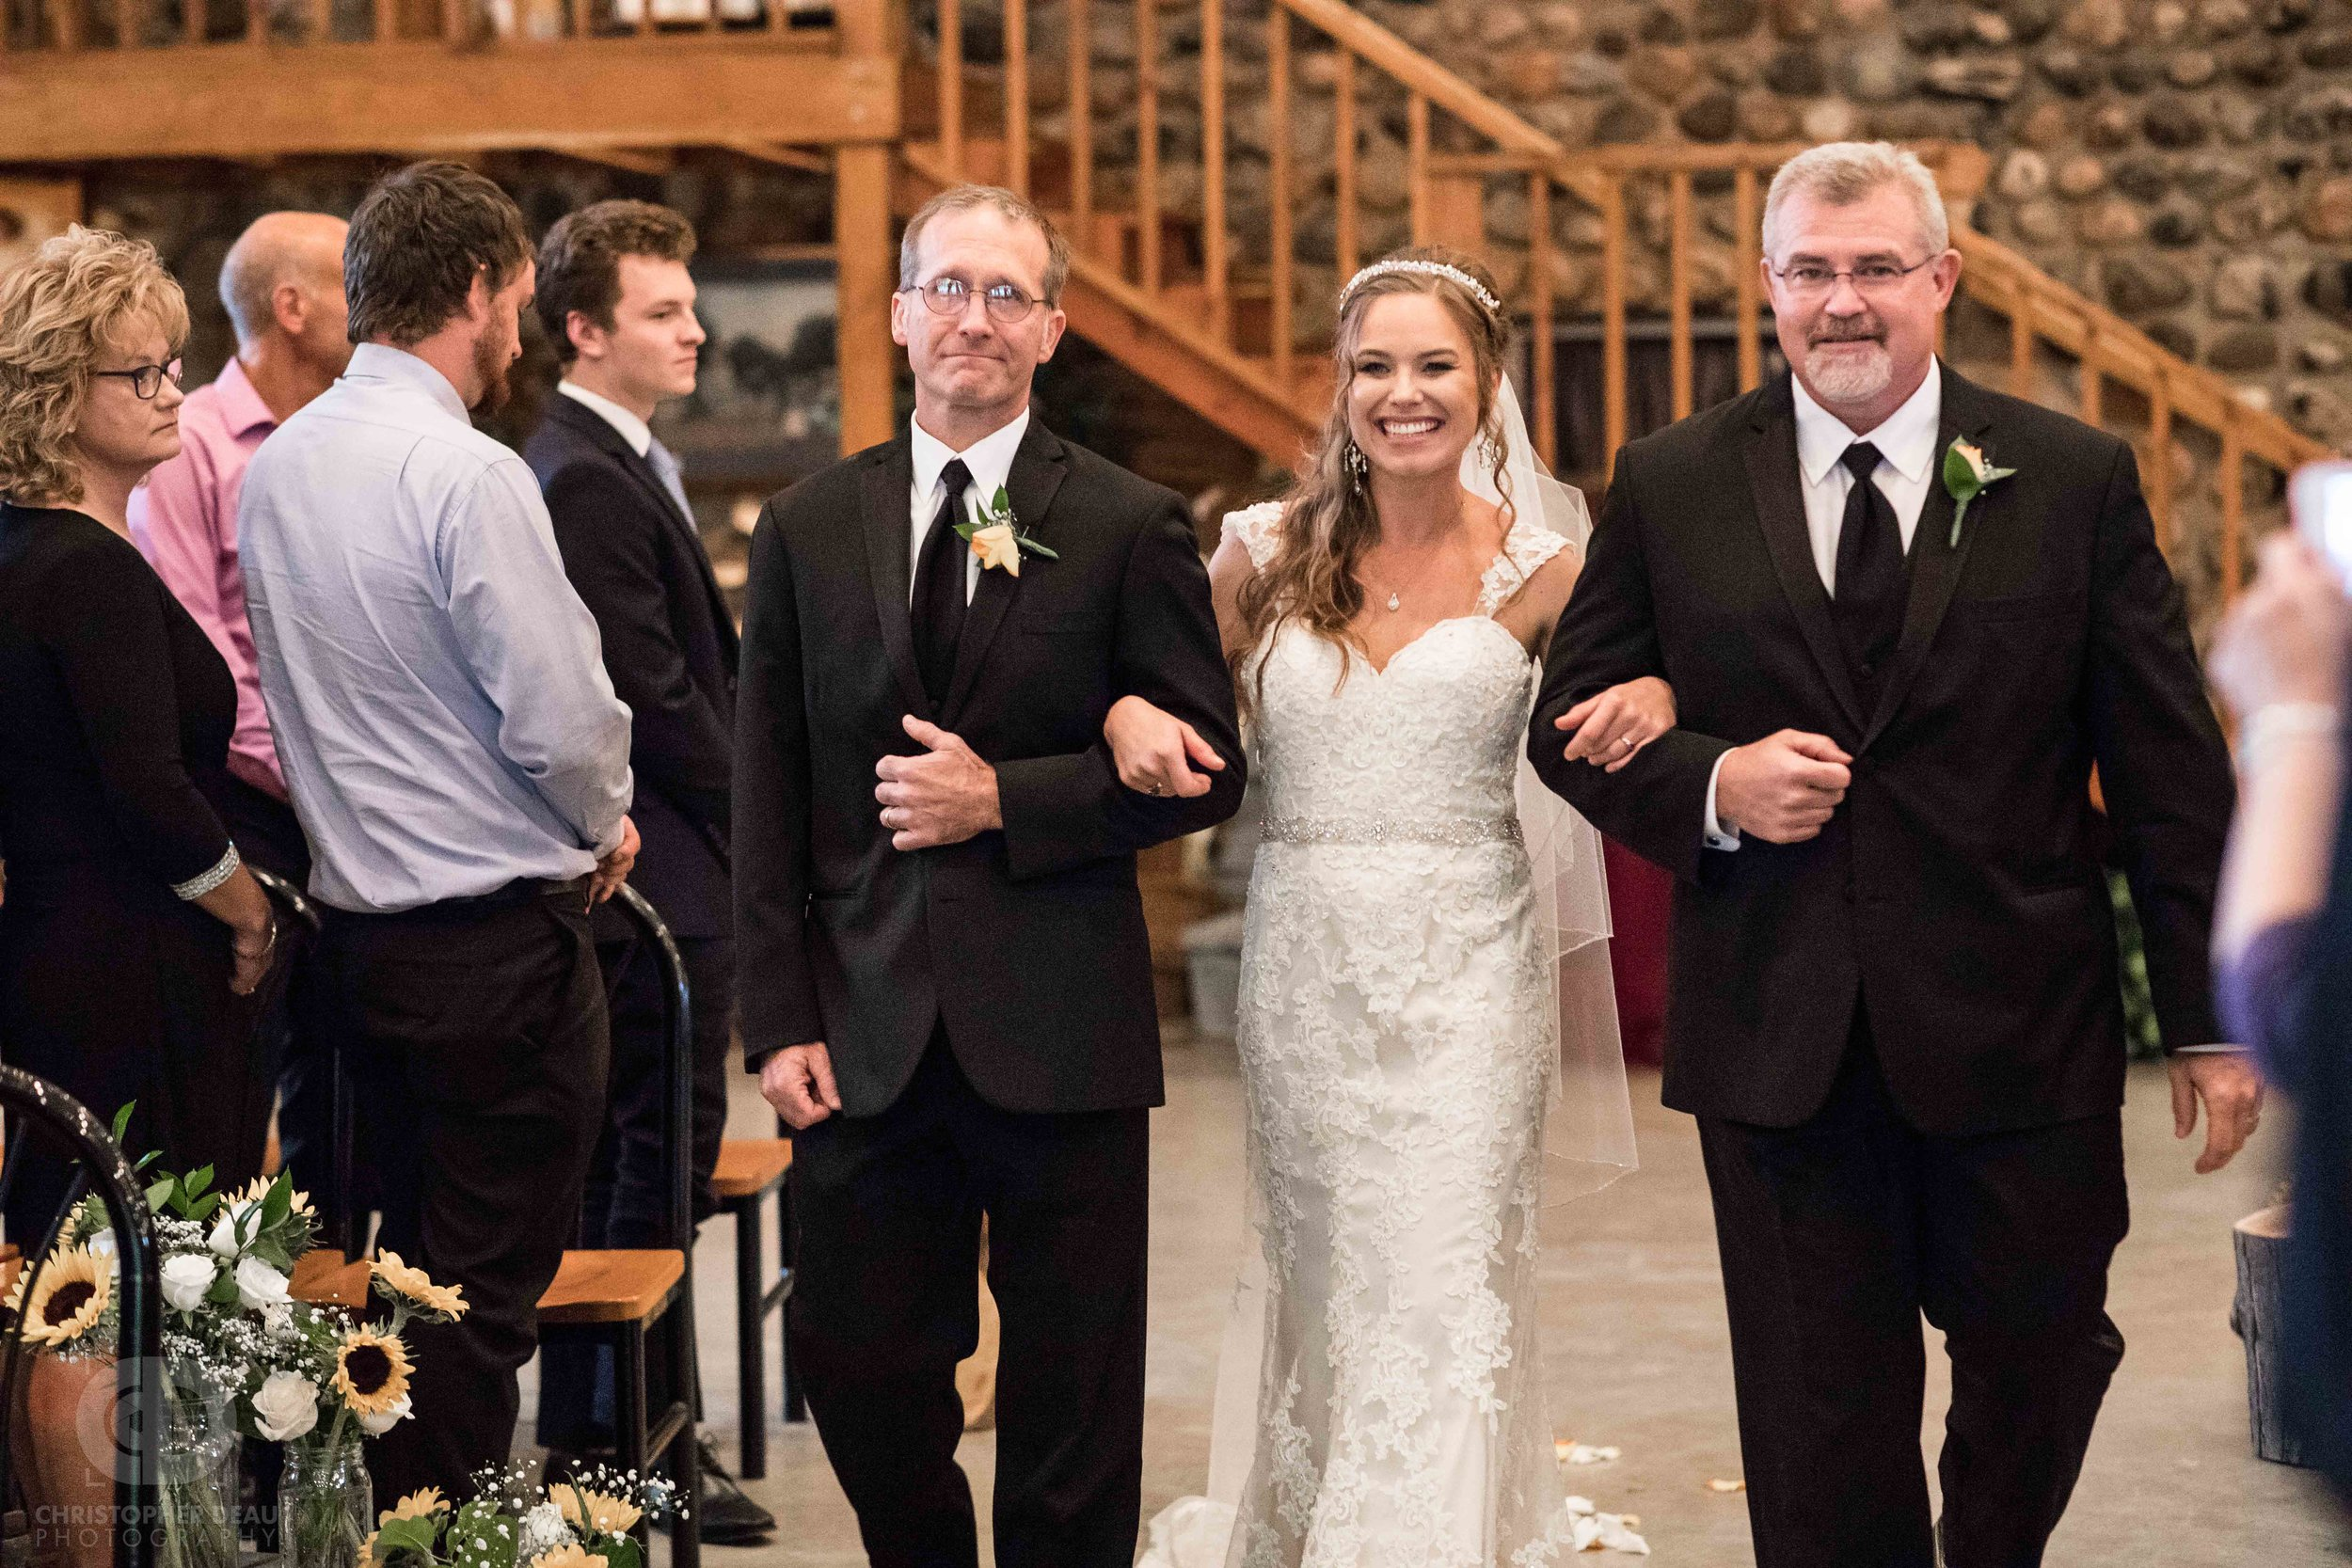 Bride being walked down the isle